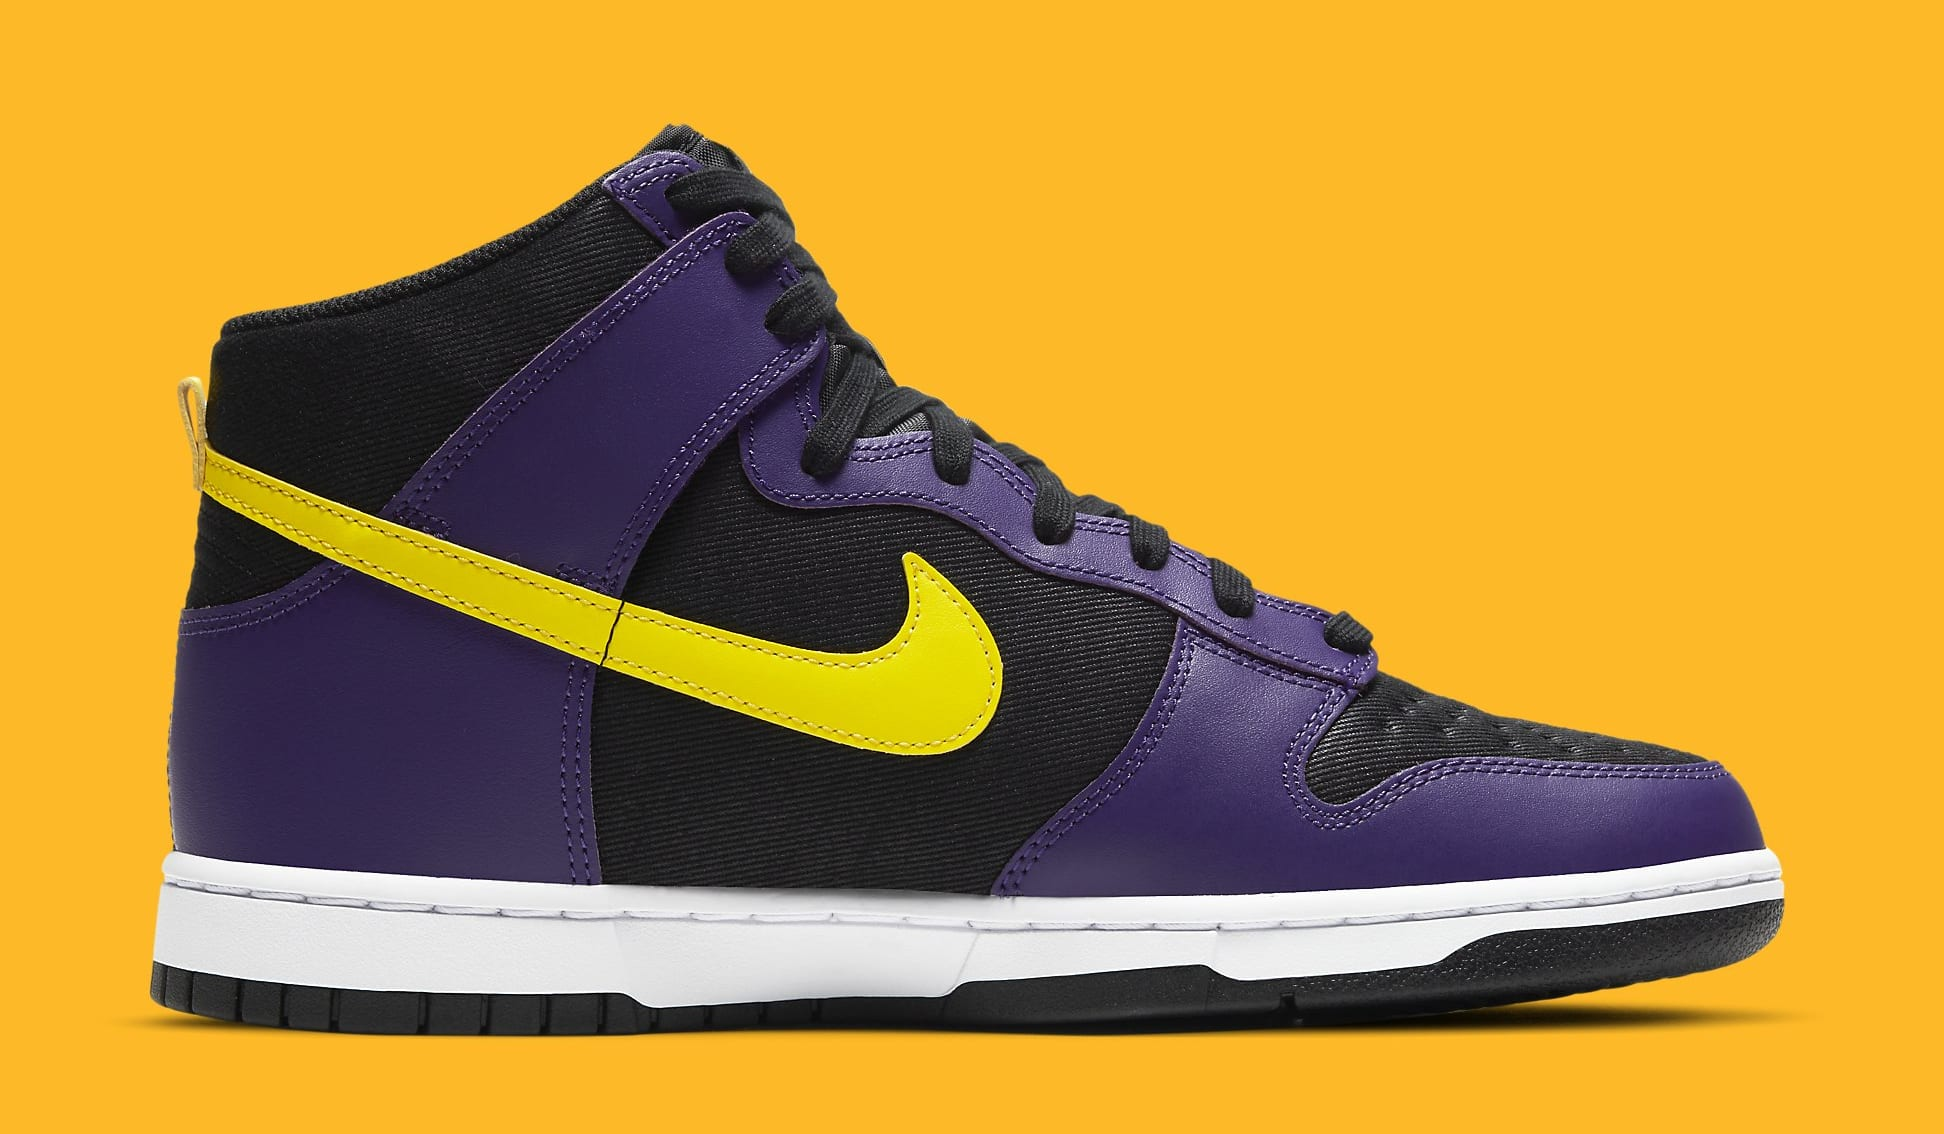 Nike Dunk High PRM EMB 'Lakers' DH0642-001 Medial